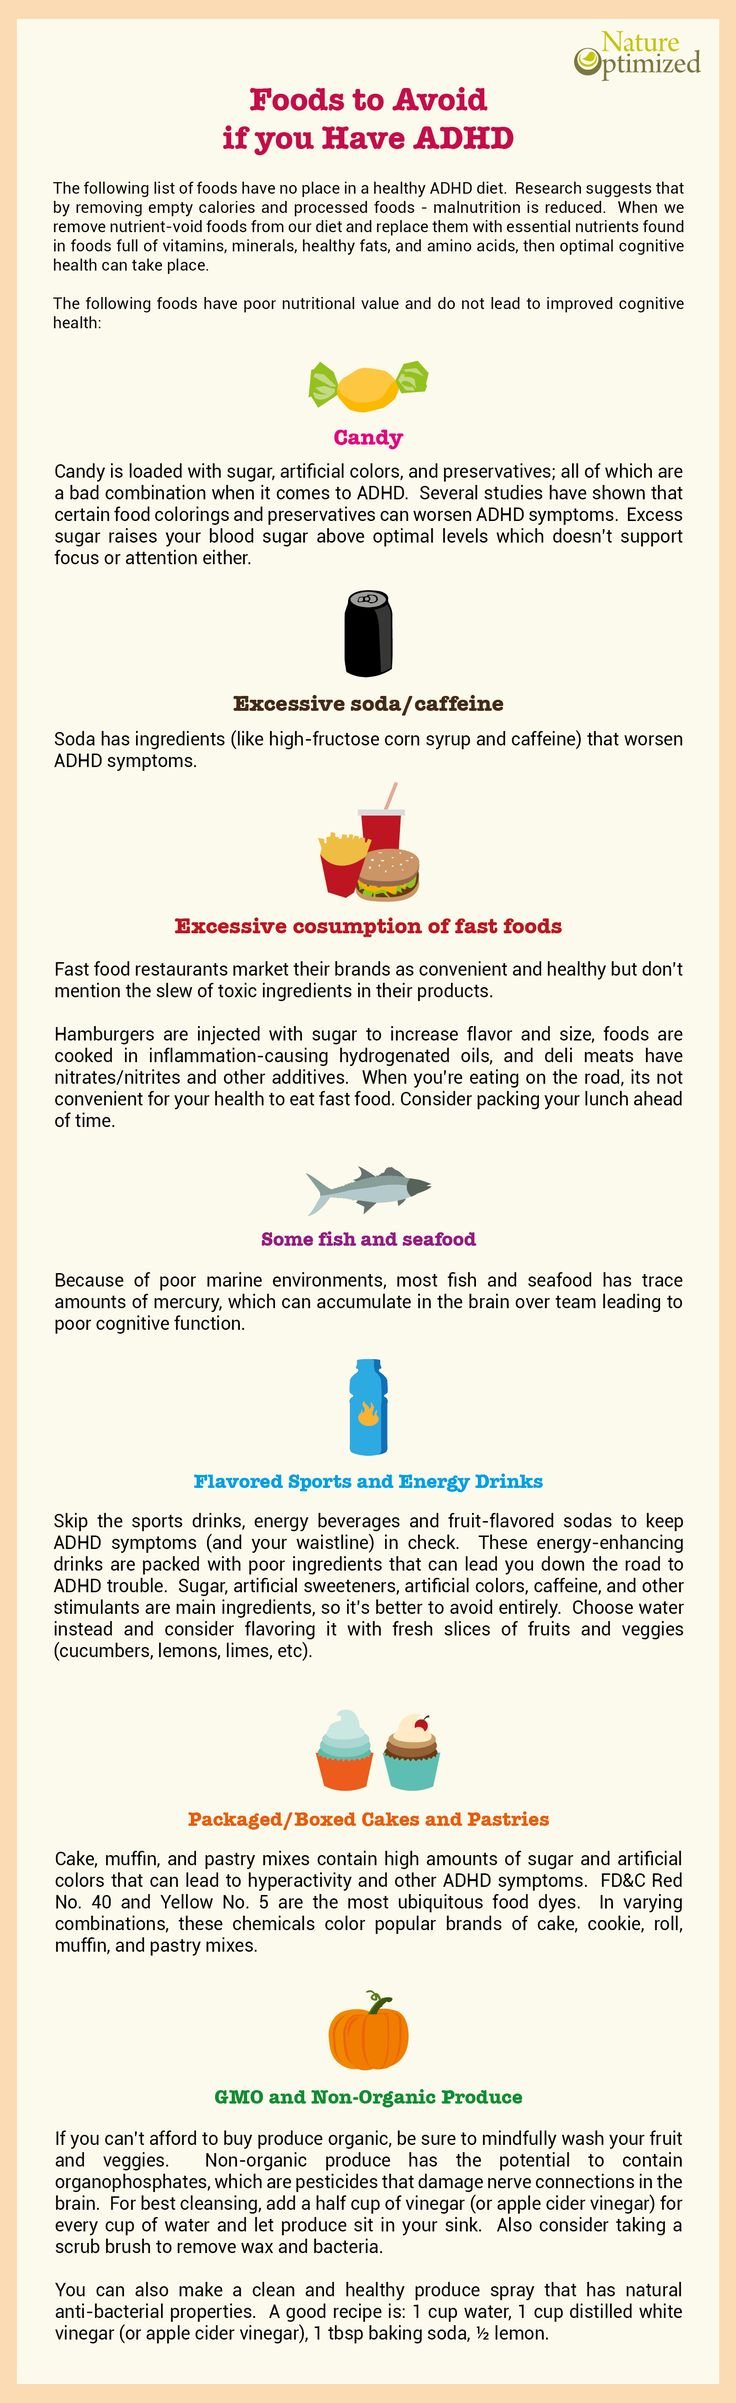 Know which foods to avoid to help decrease ADHD symptoms. The following list has no place in an ADHD diet. Research suggests that by removing empty calories and processed foods - malnutrition is reduced. When we remove nutrient-void foods from our diet and replace them with nutrients found in foods with vitamins, minerals, healthy fats, and amino acids, then optimal cognitive health can take place.